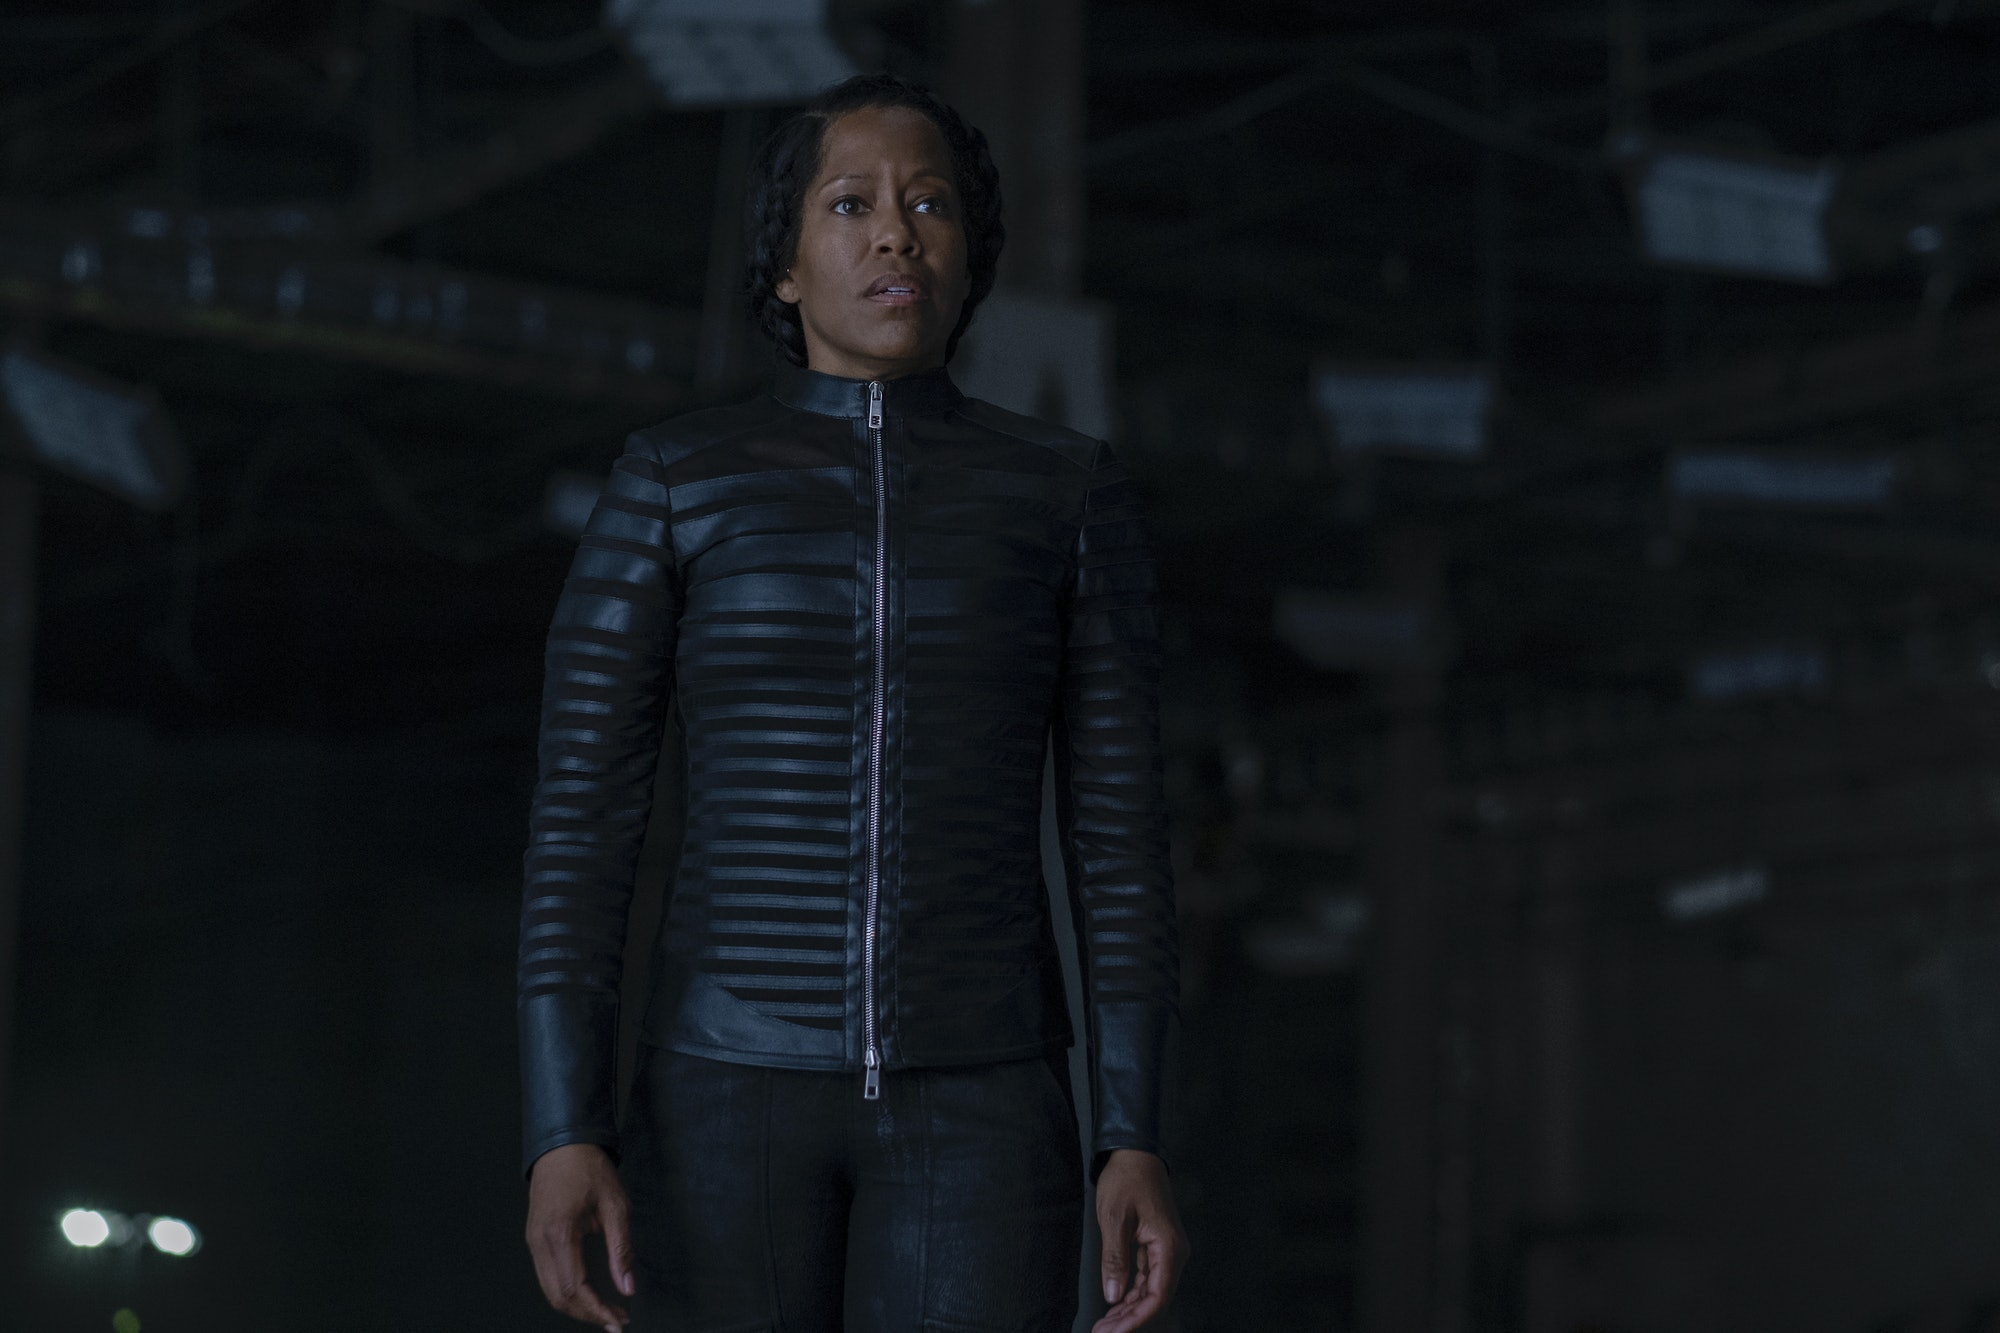 Regina King as Angela Abar in HBO's 'Watchmen'